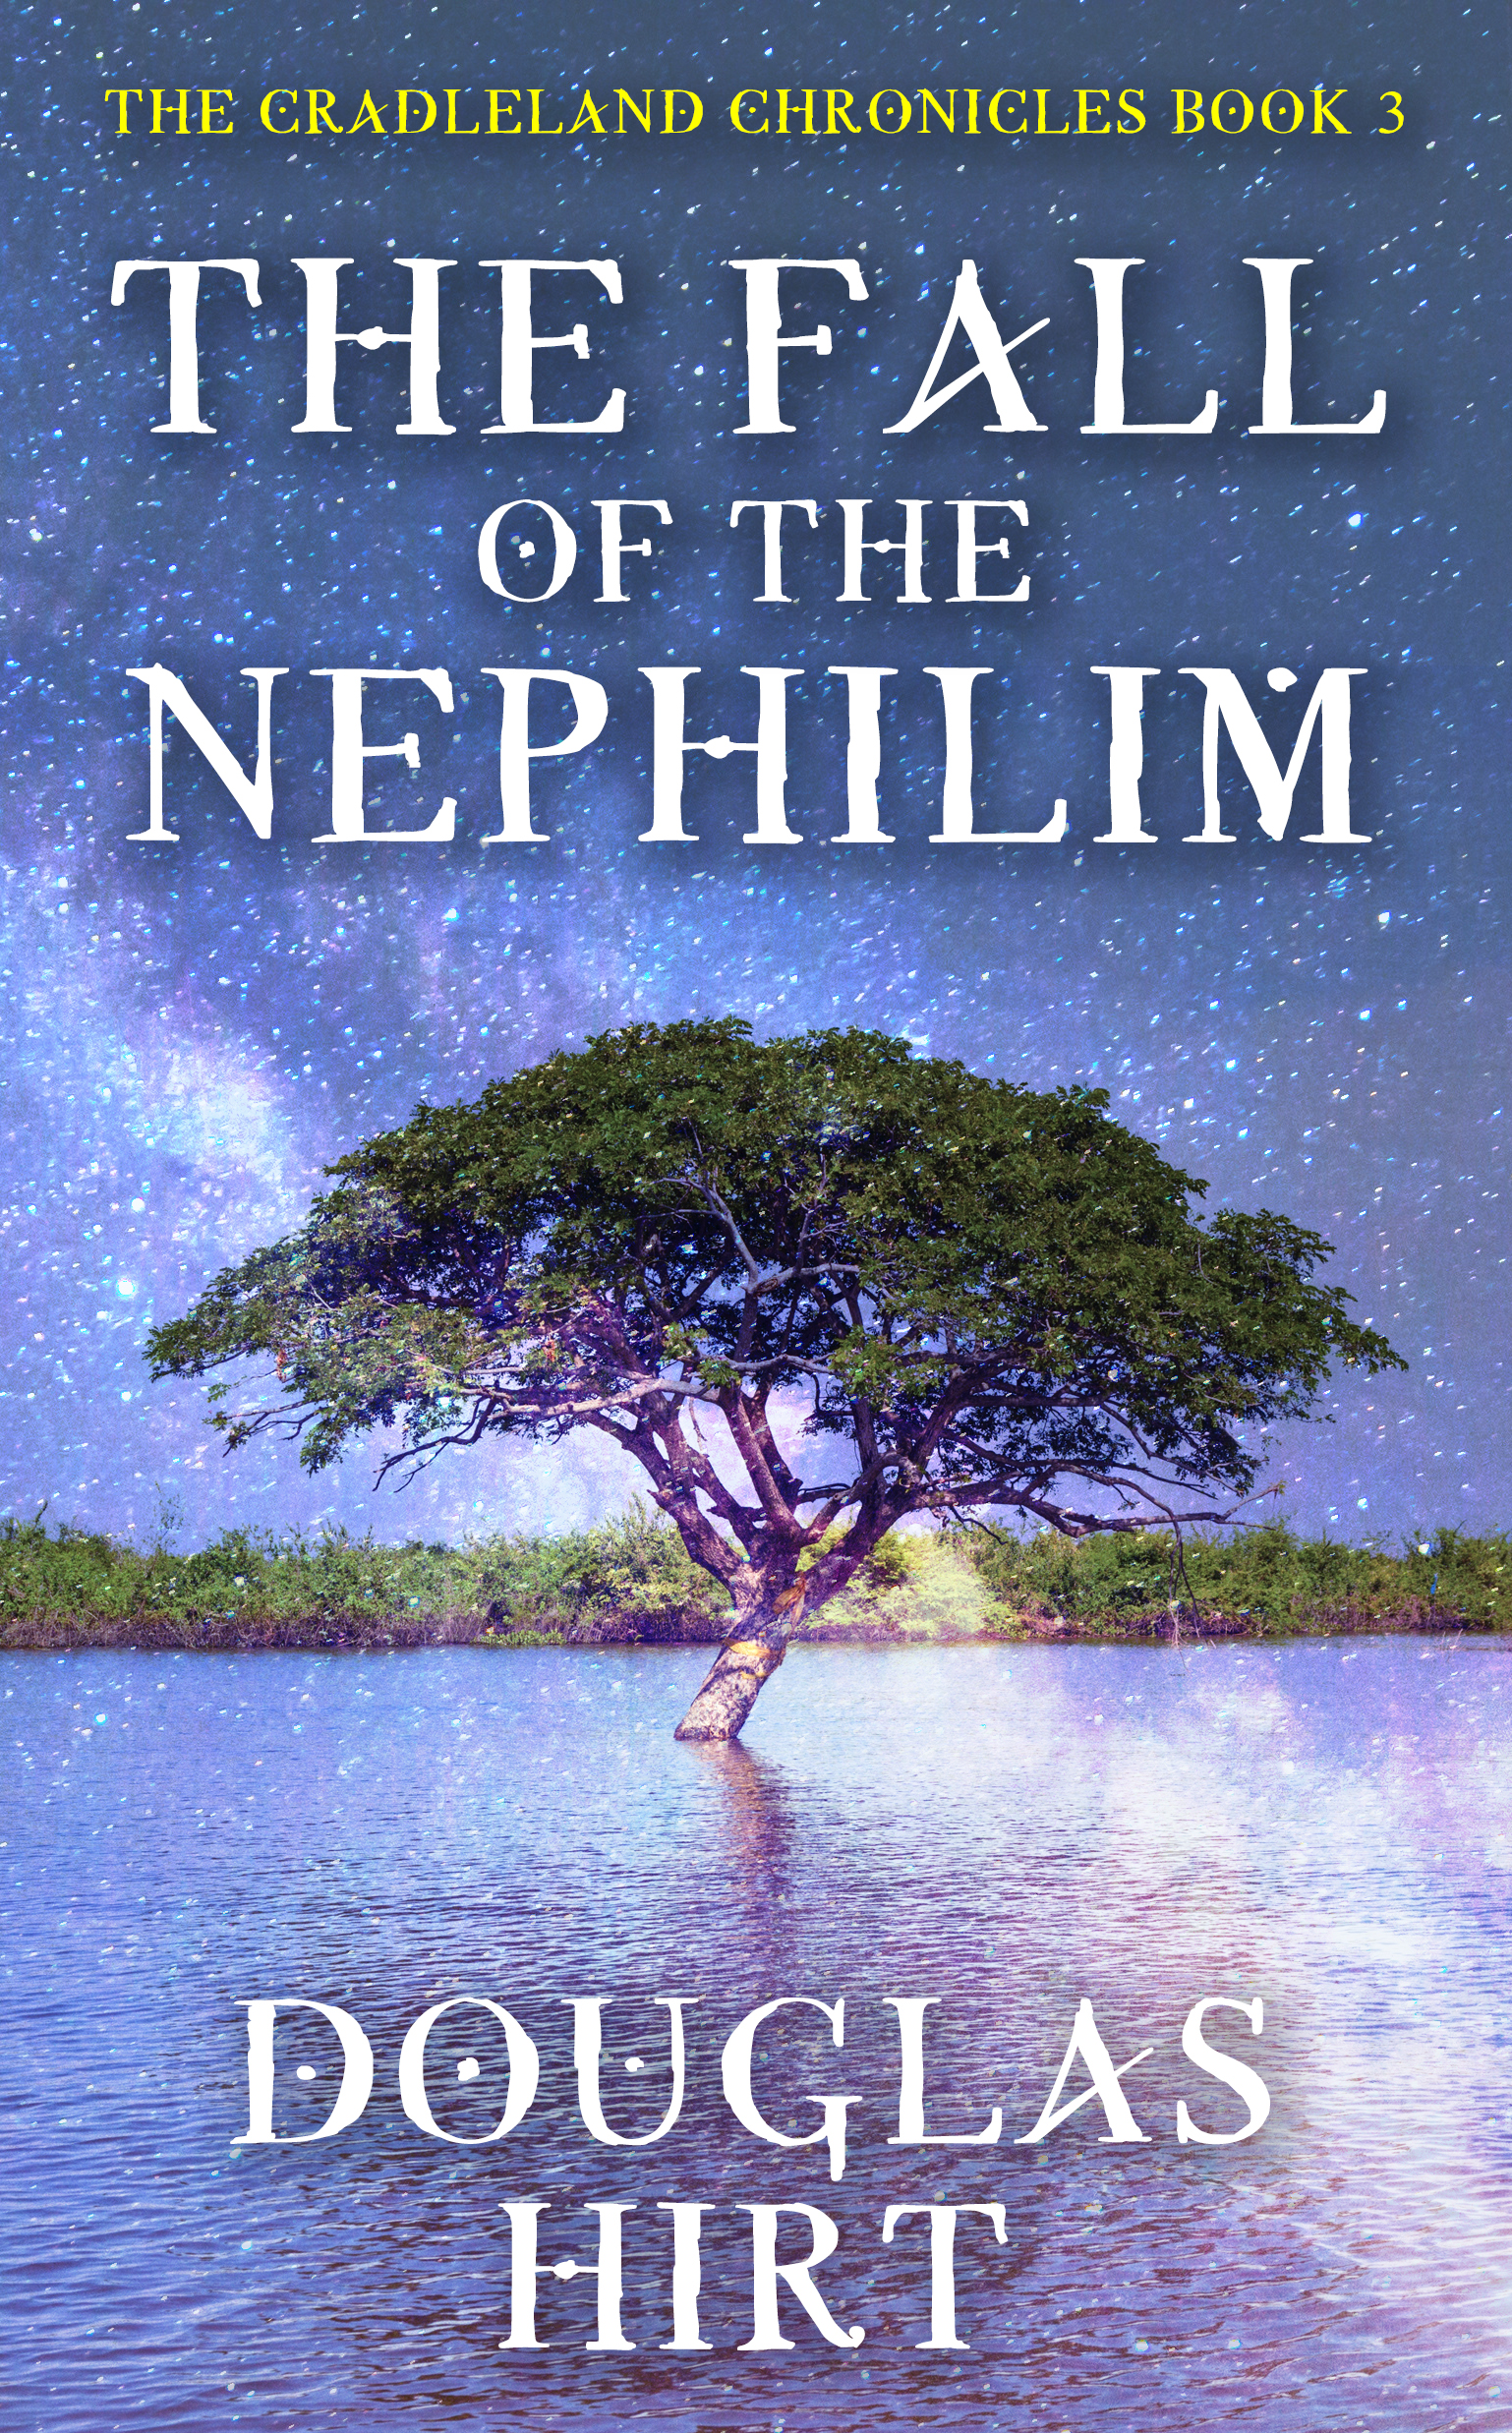 The Fall of the Nephilim by Douglas Hirt